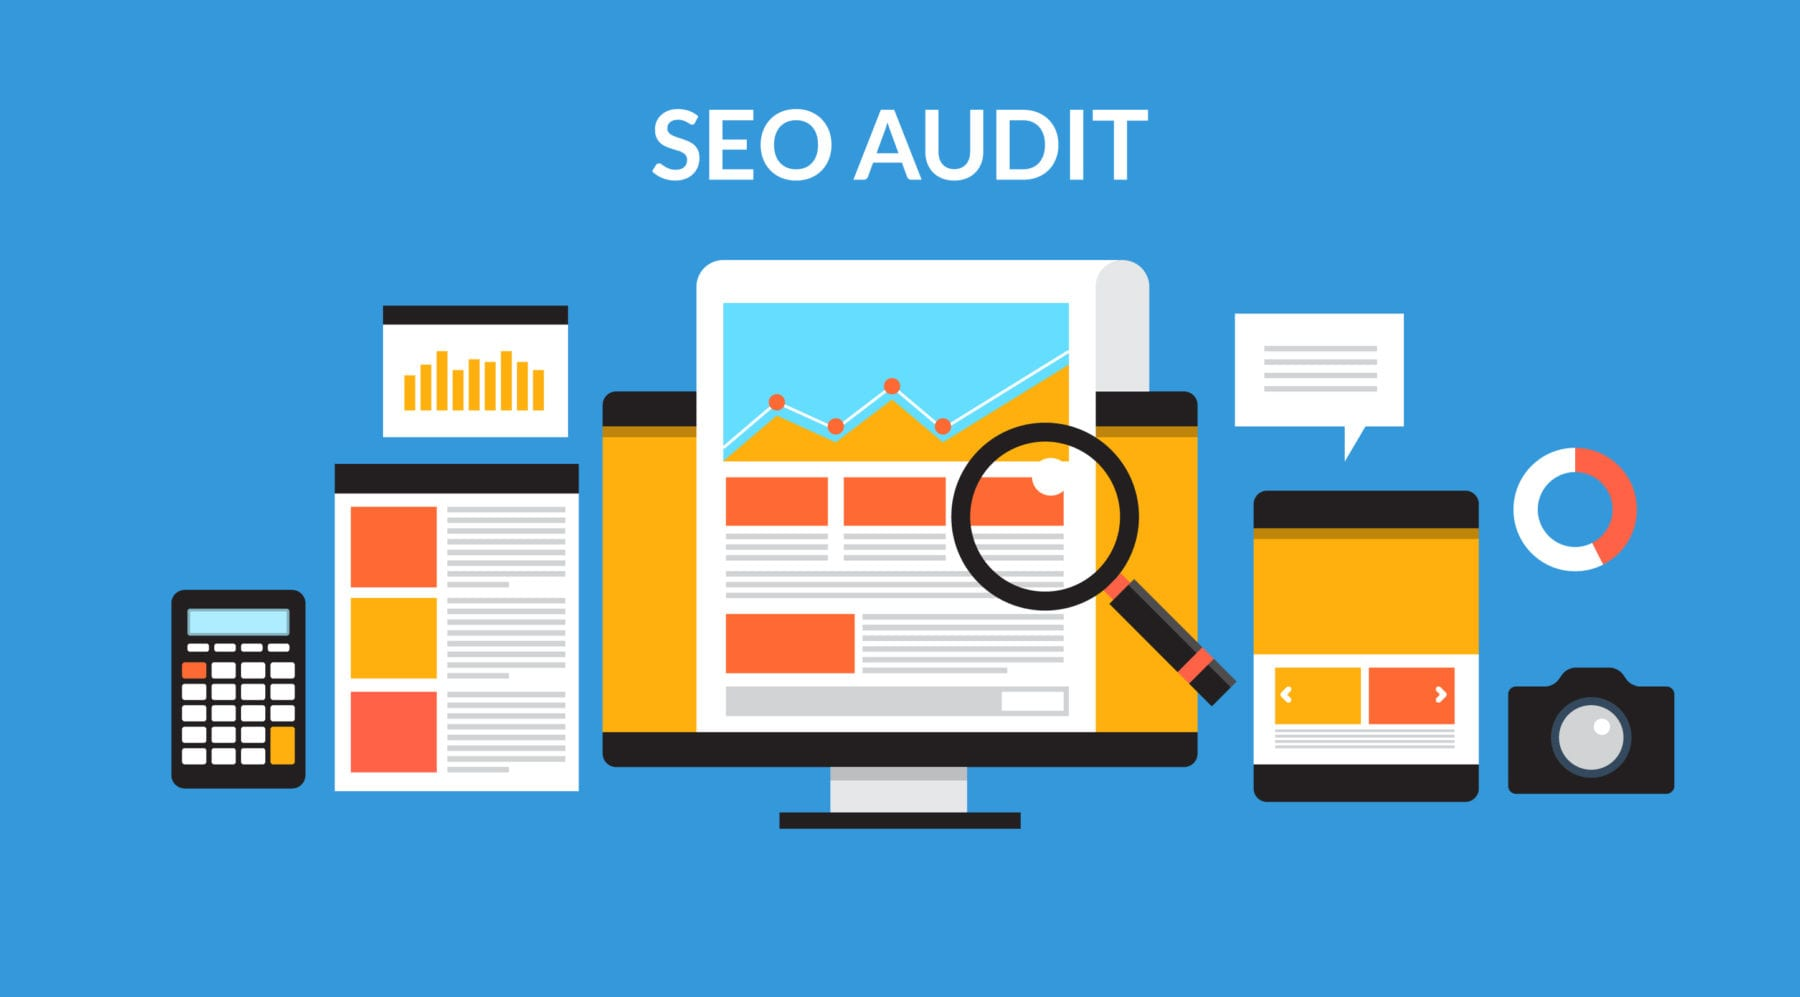 I will provide a professional SEO audit report and action plan to rank higher on google